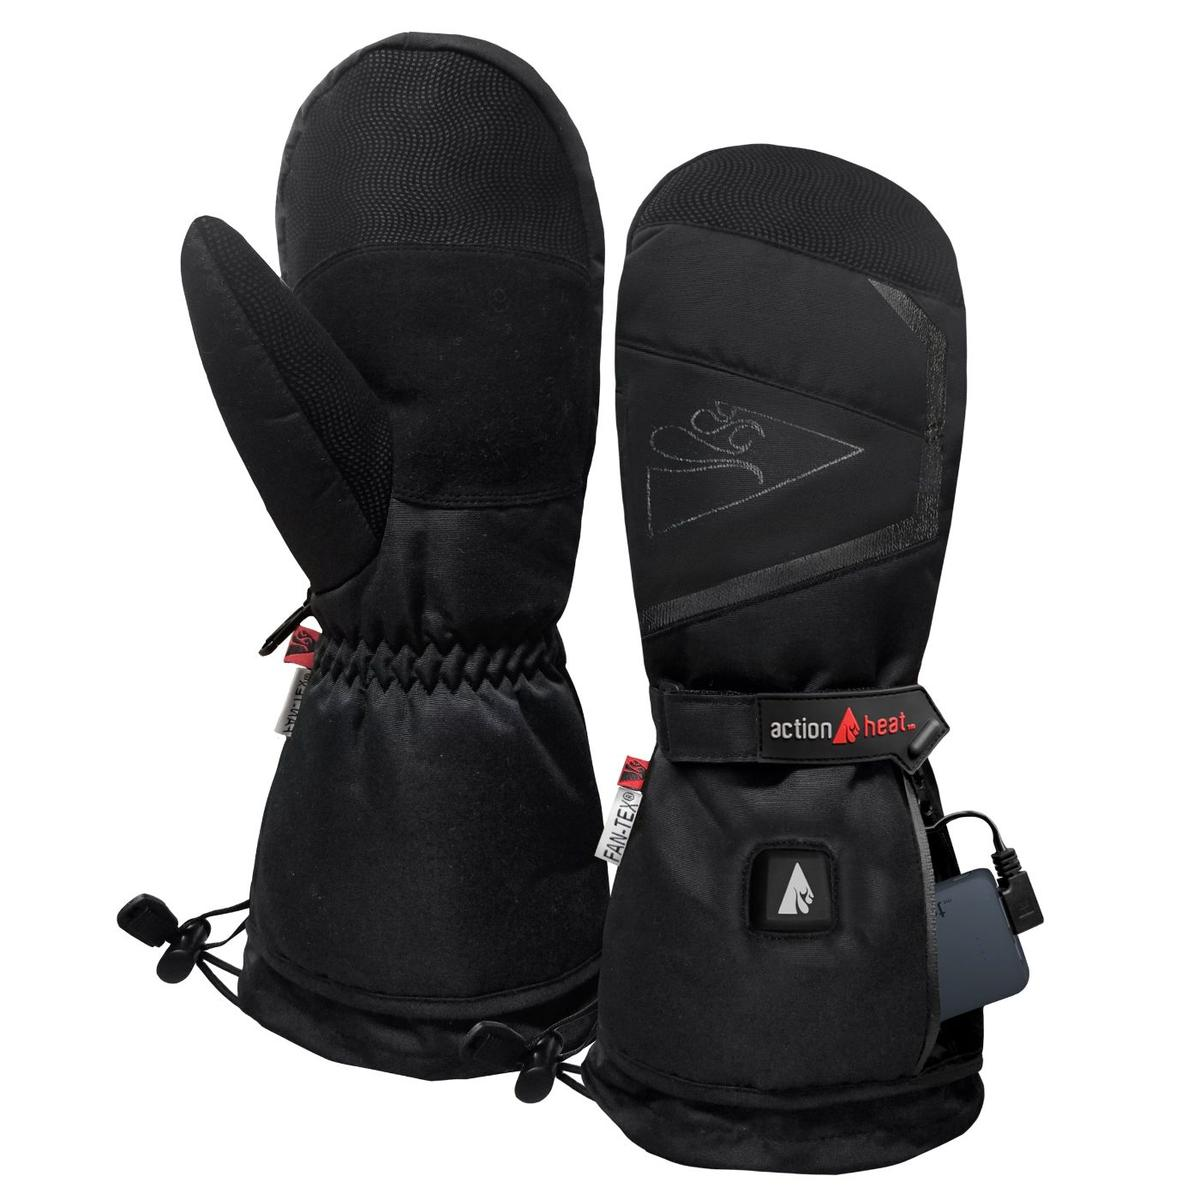 ActionHeat 5V Battery Heated Mittens - Heated